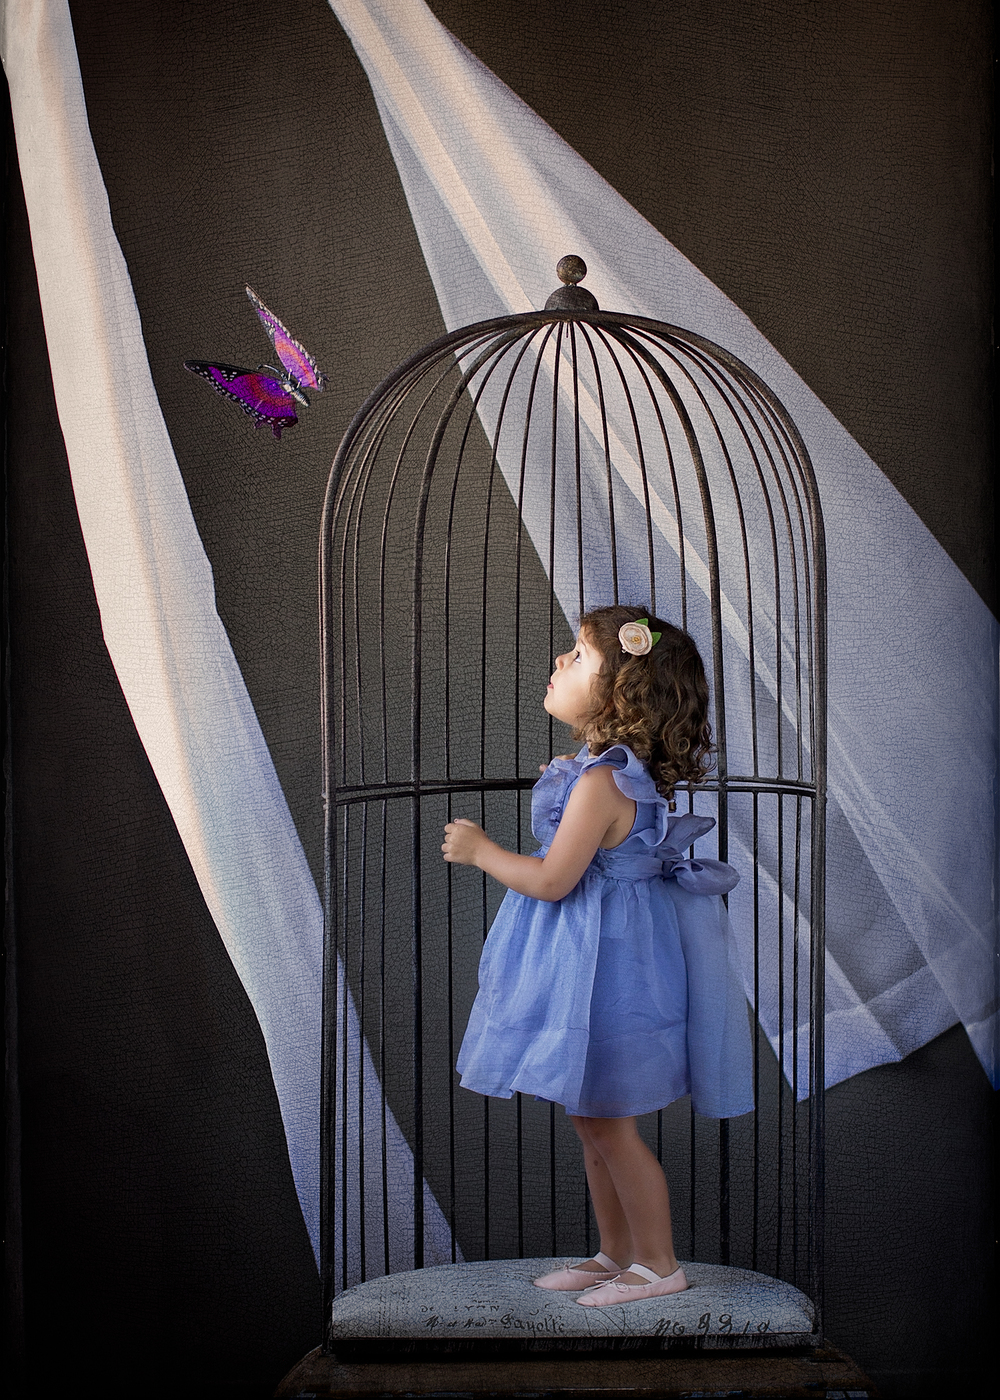 Sky 9 Studio Children's Editorial Photography - Butterfly